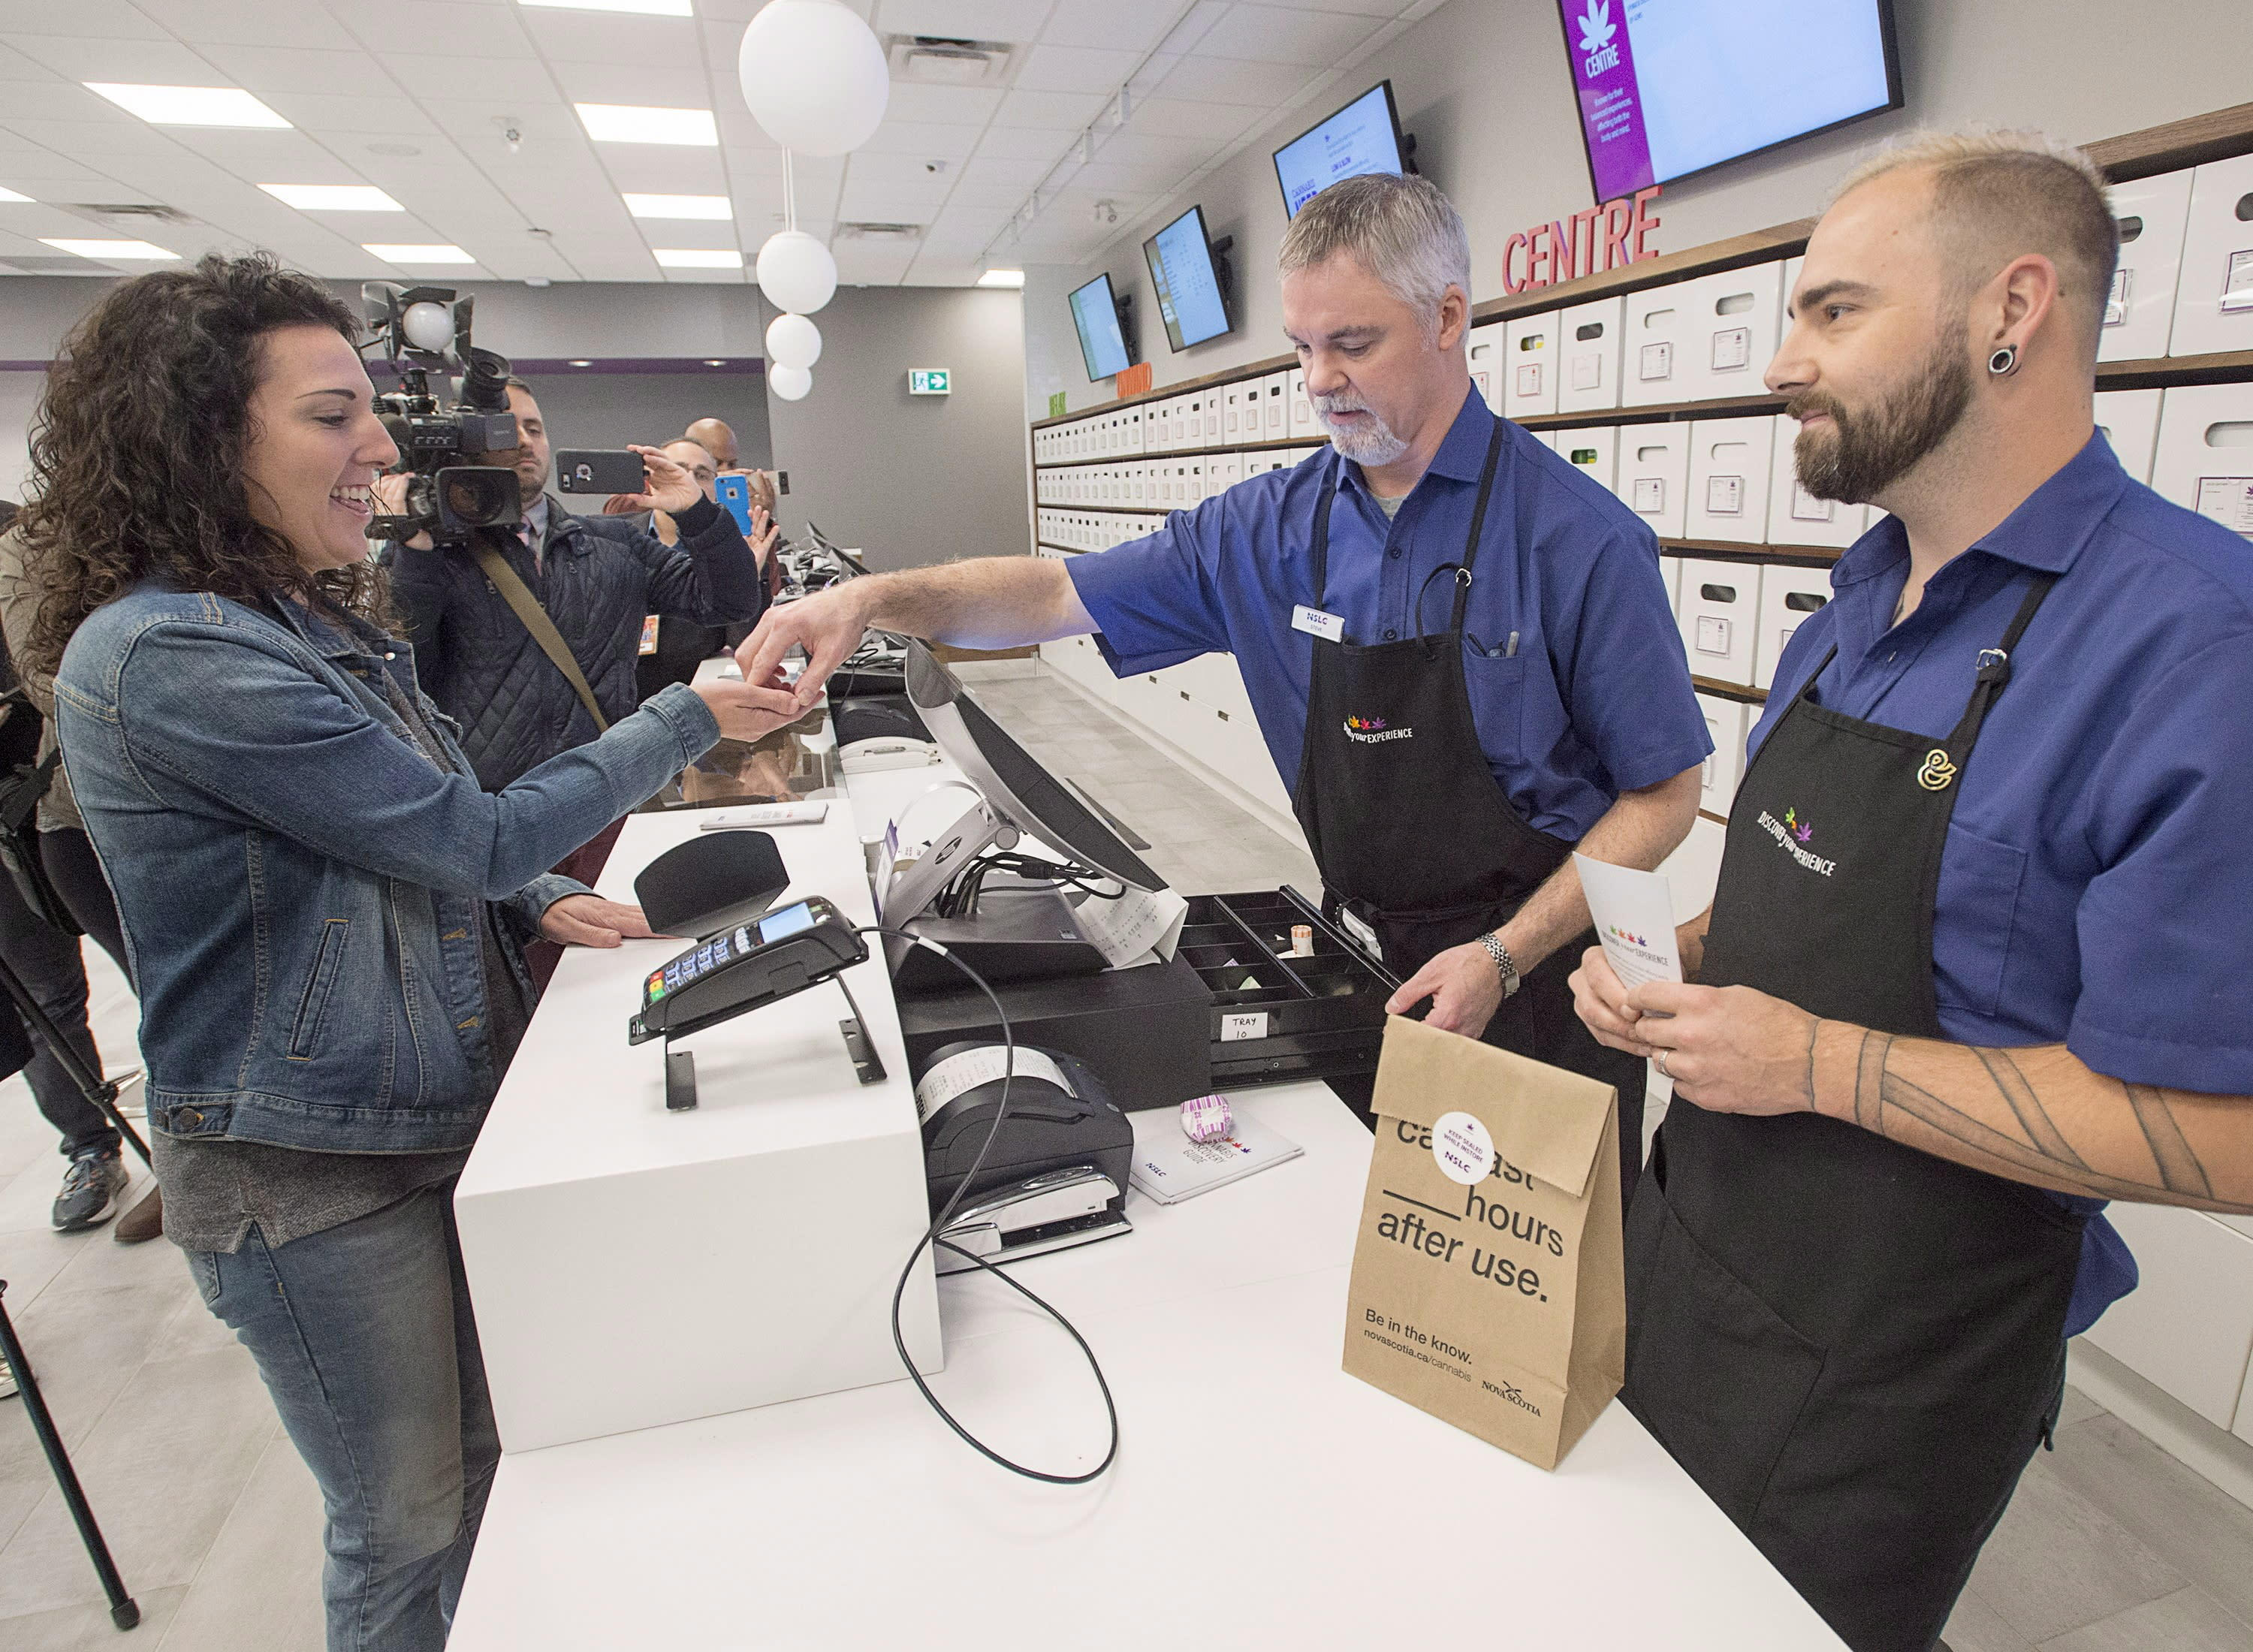 <p>Alicia Wright makes a purchase at the Nova Scotia Liquor Corporation cannabis store in Halifax on Oct. 17, 2018. Residents can make their purchases at 12 Nova Scotia Liquor Corporation stores across the province and online.<br>(Photo from Andrew Vaughan, The Canadian Press) </p>